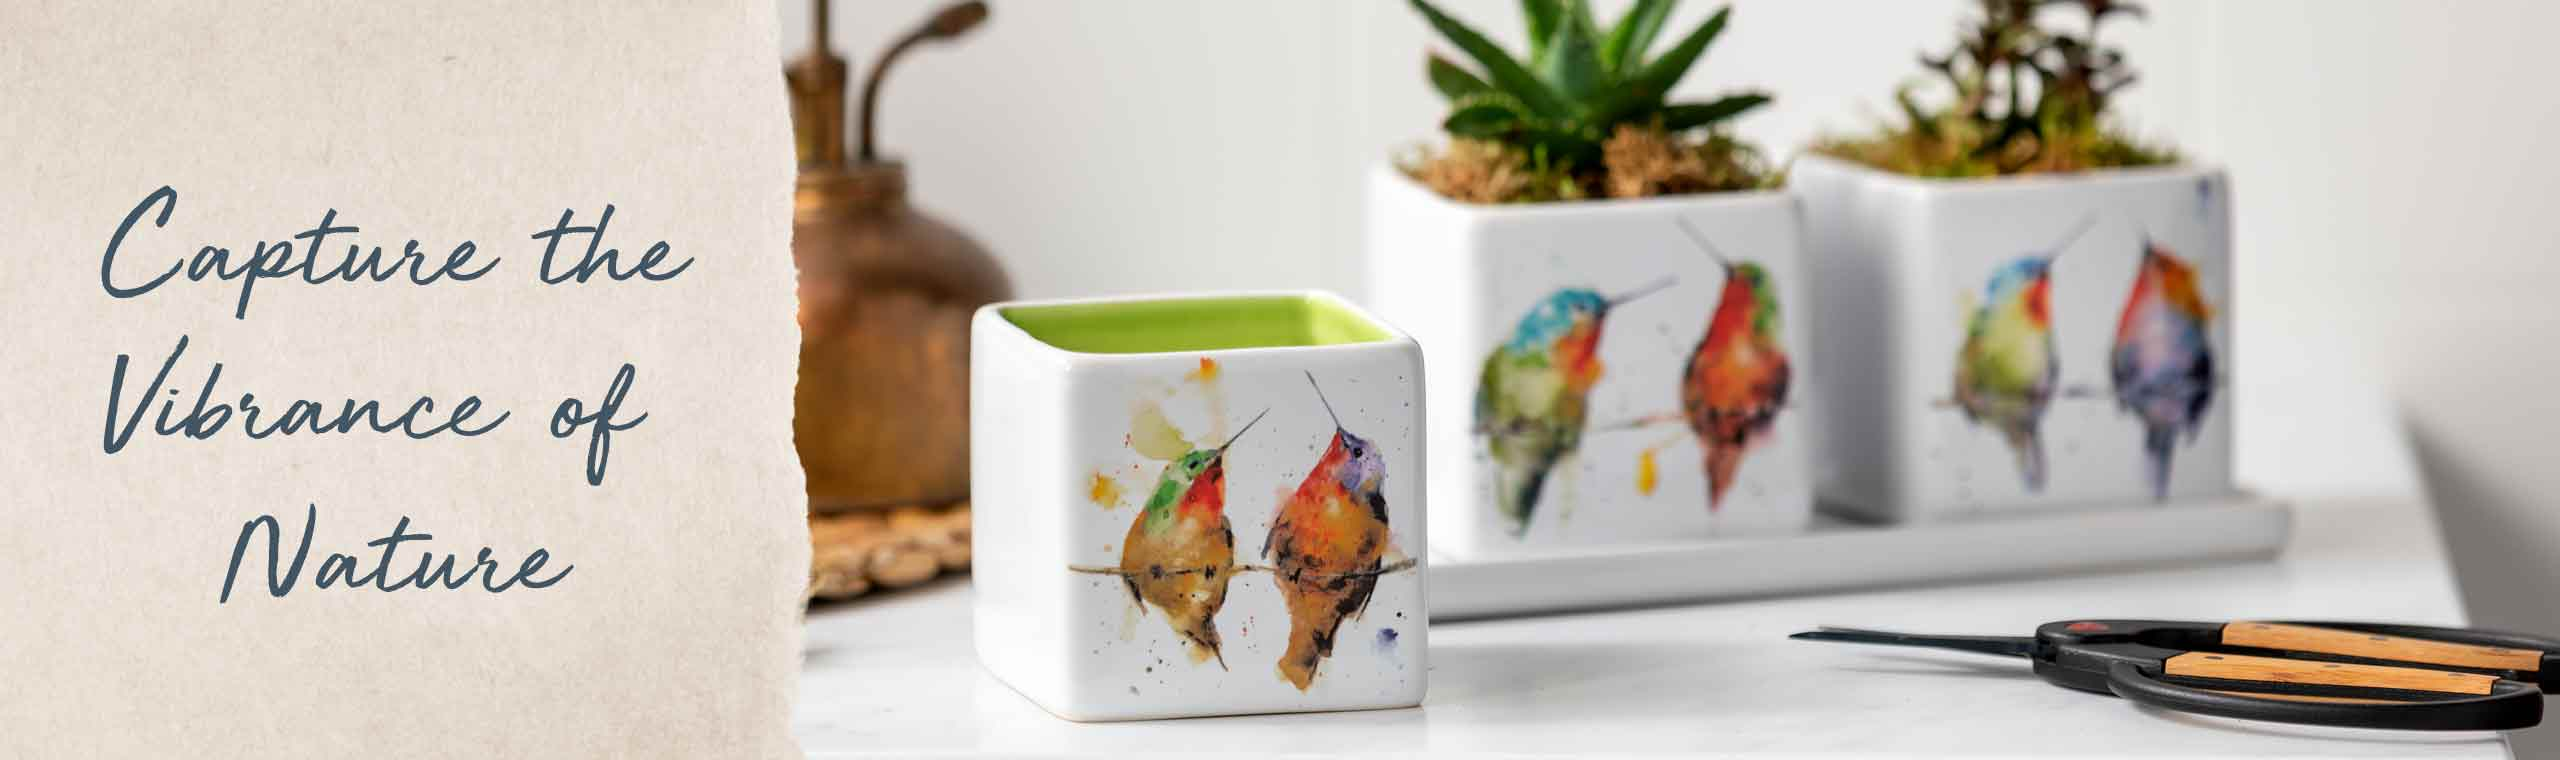 Capture the Vibrance of Nature. Set of three planter pots decorated in colorful watercolor birds.